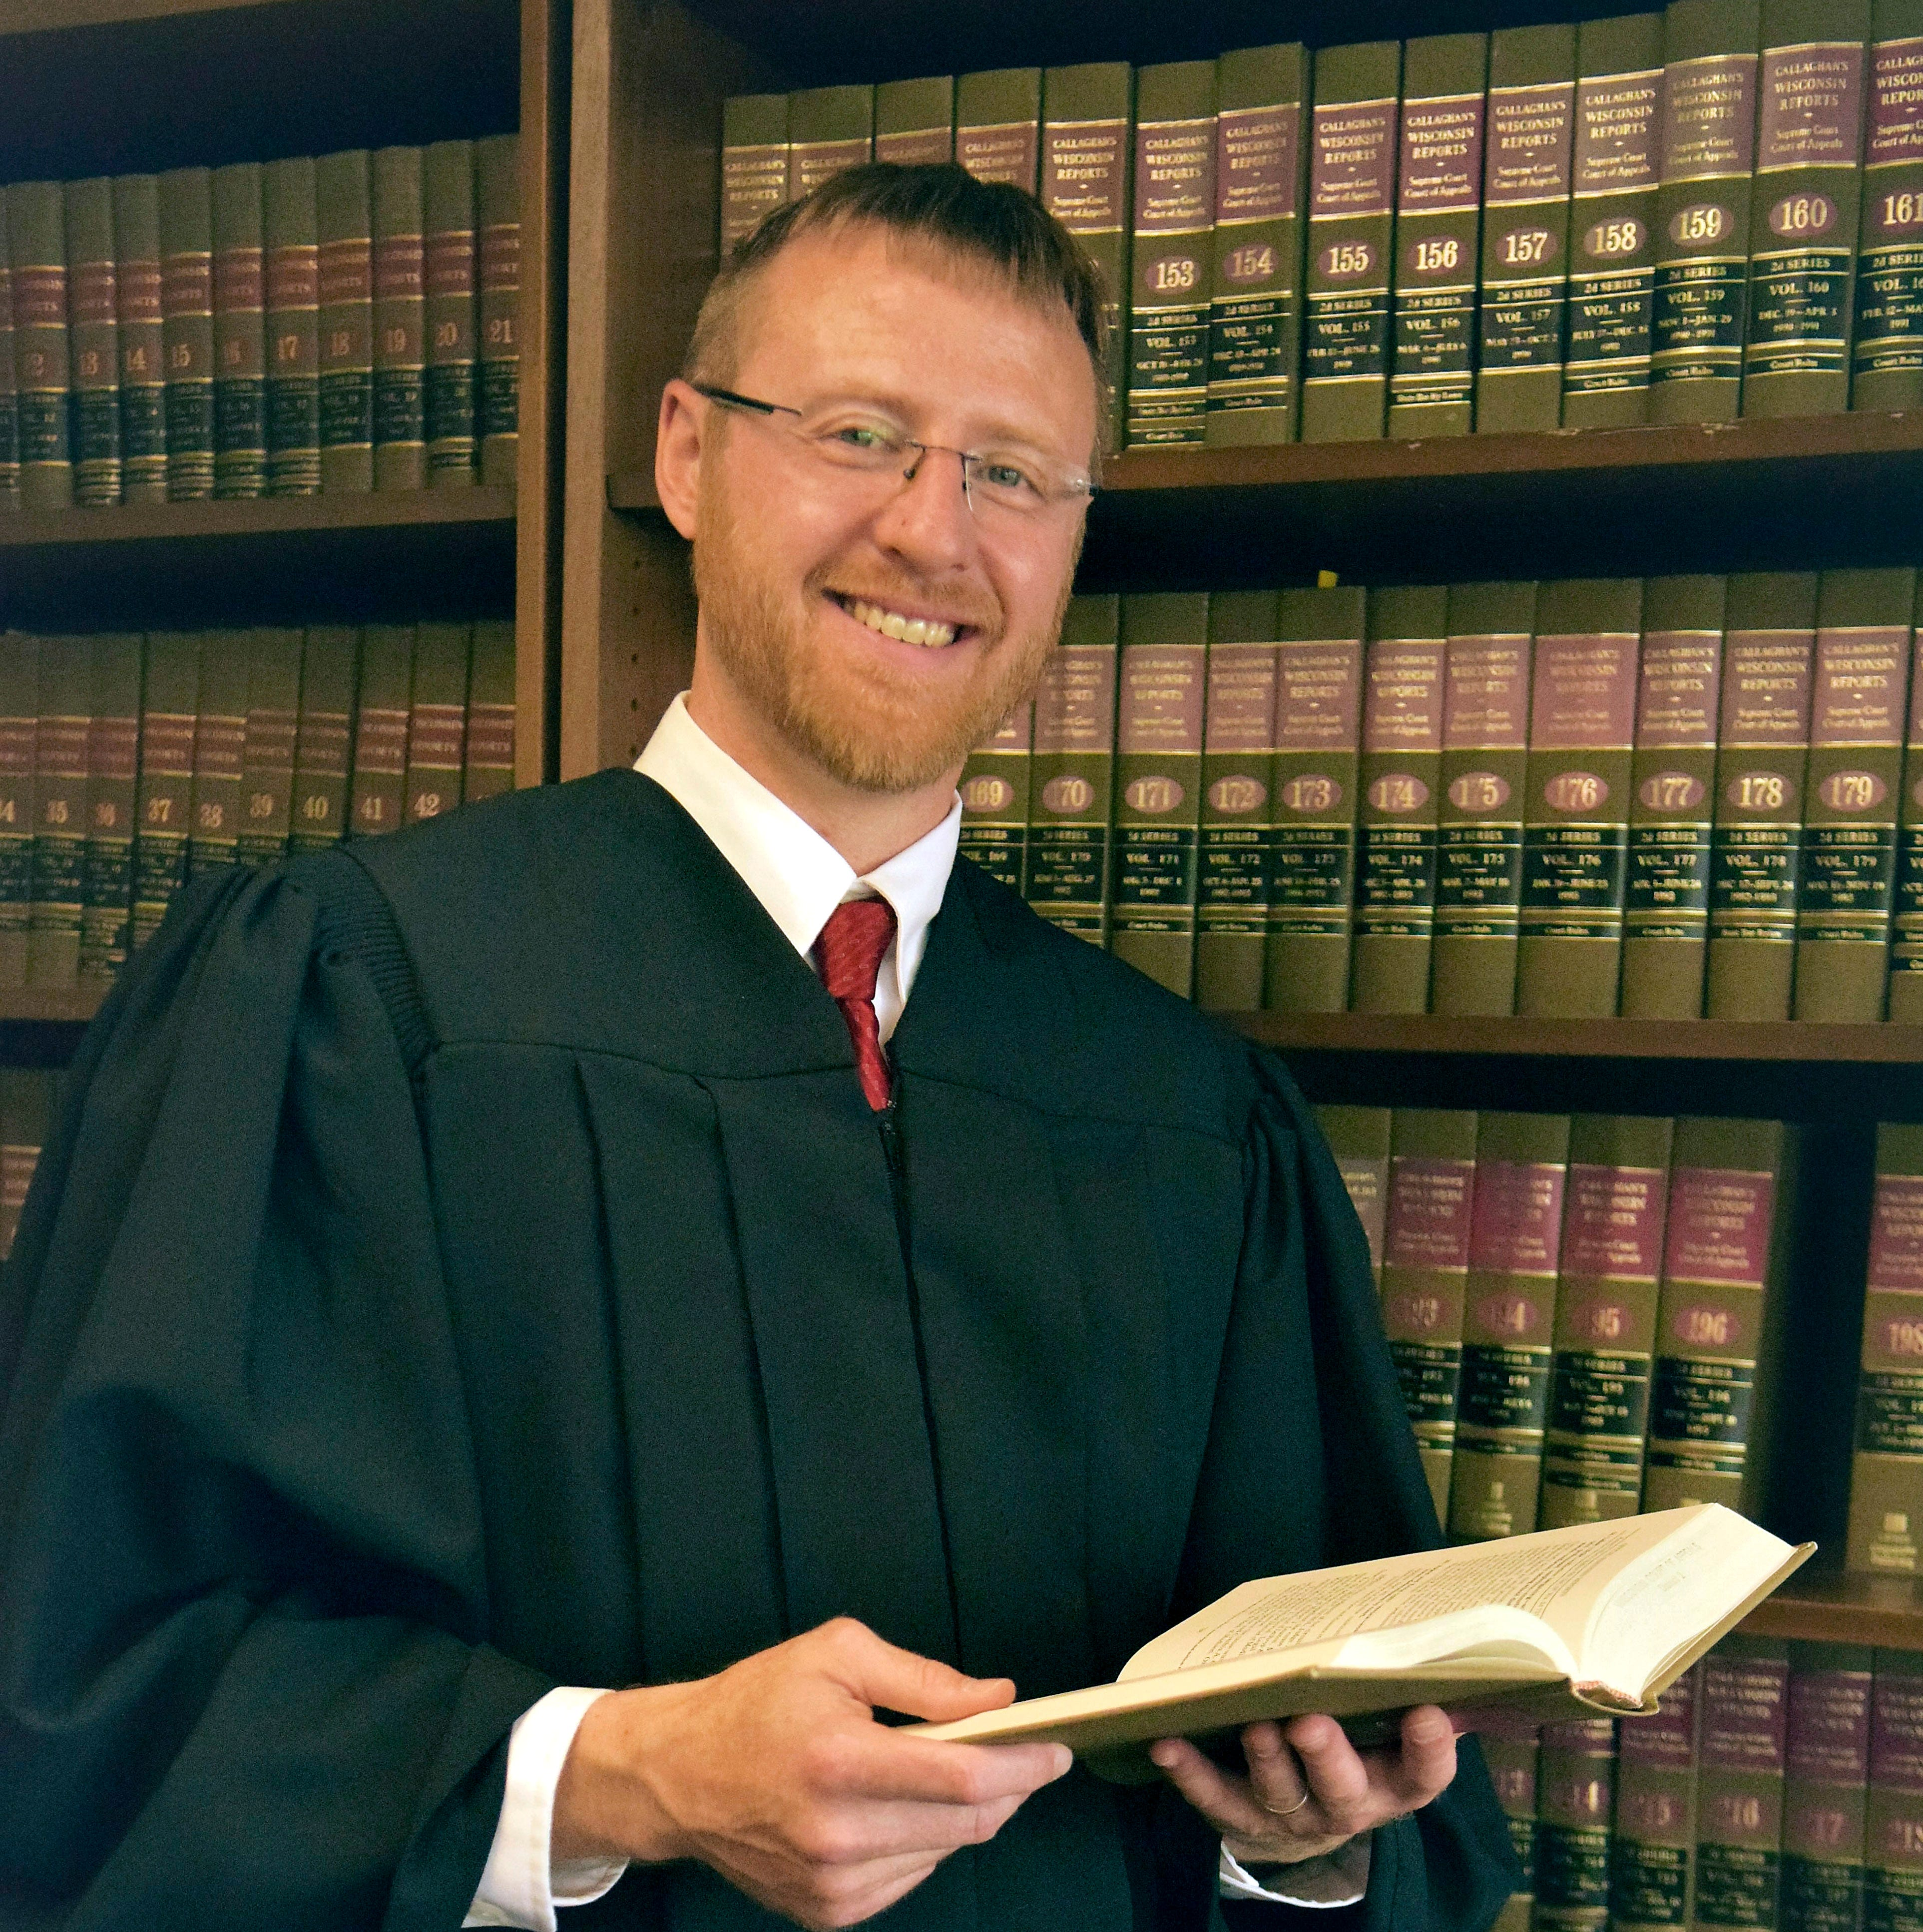 Wisconsin Supreme Court candidate Brian Hagedorn's positions on legal precedent fair game